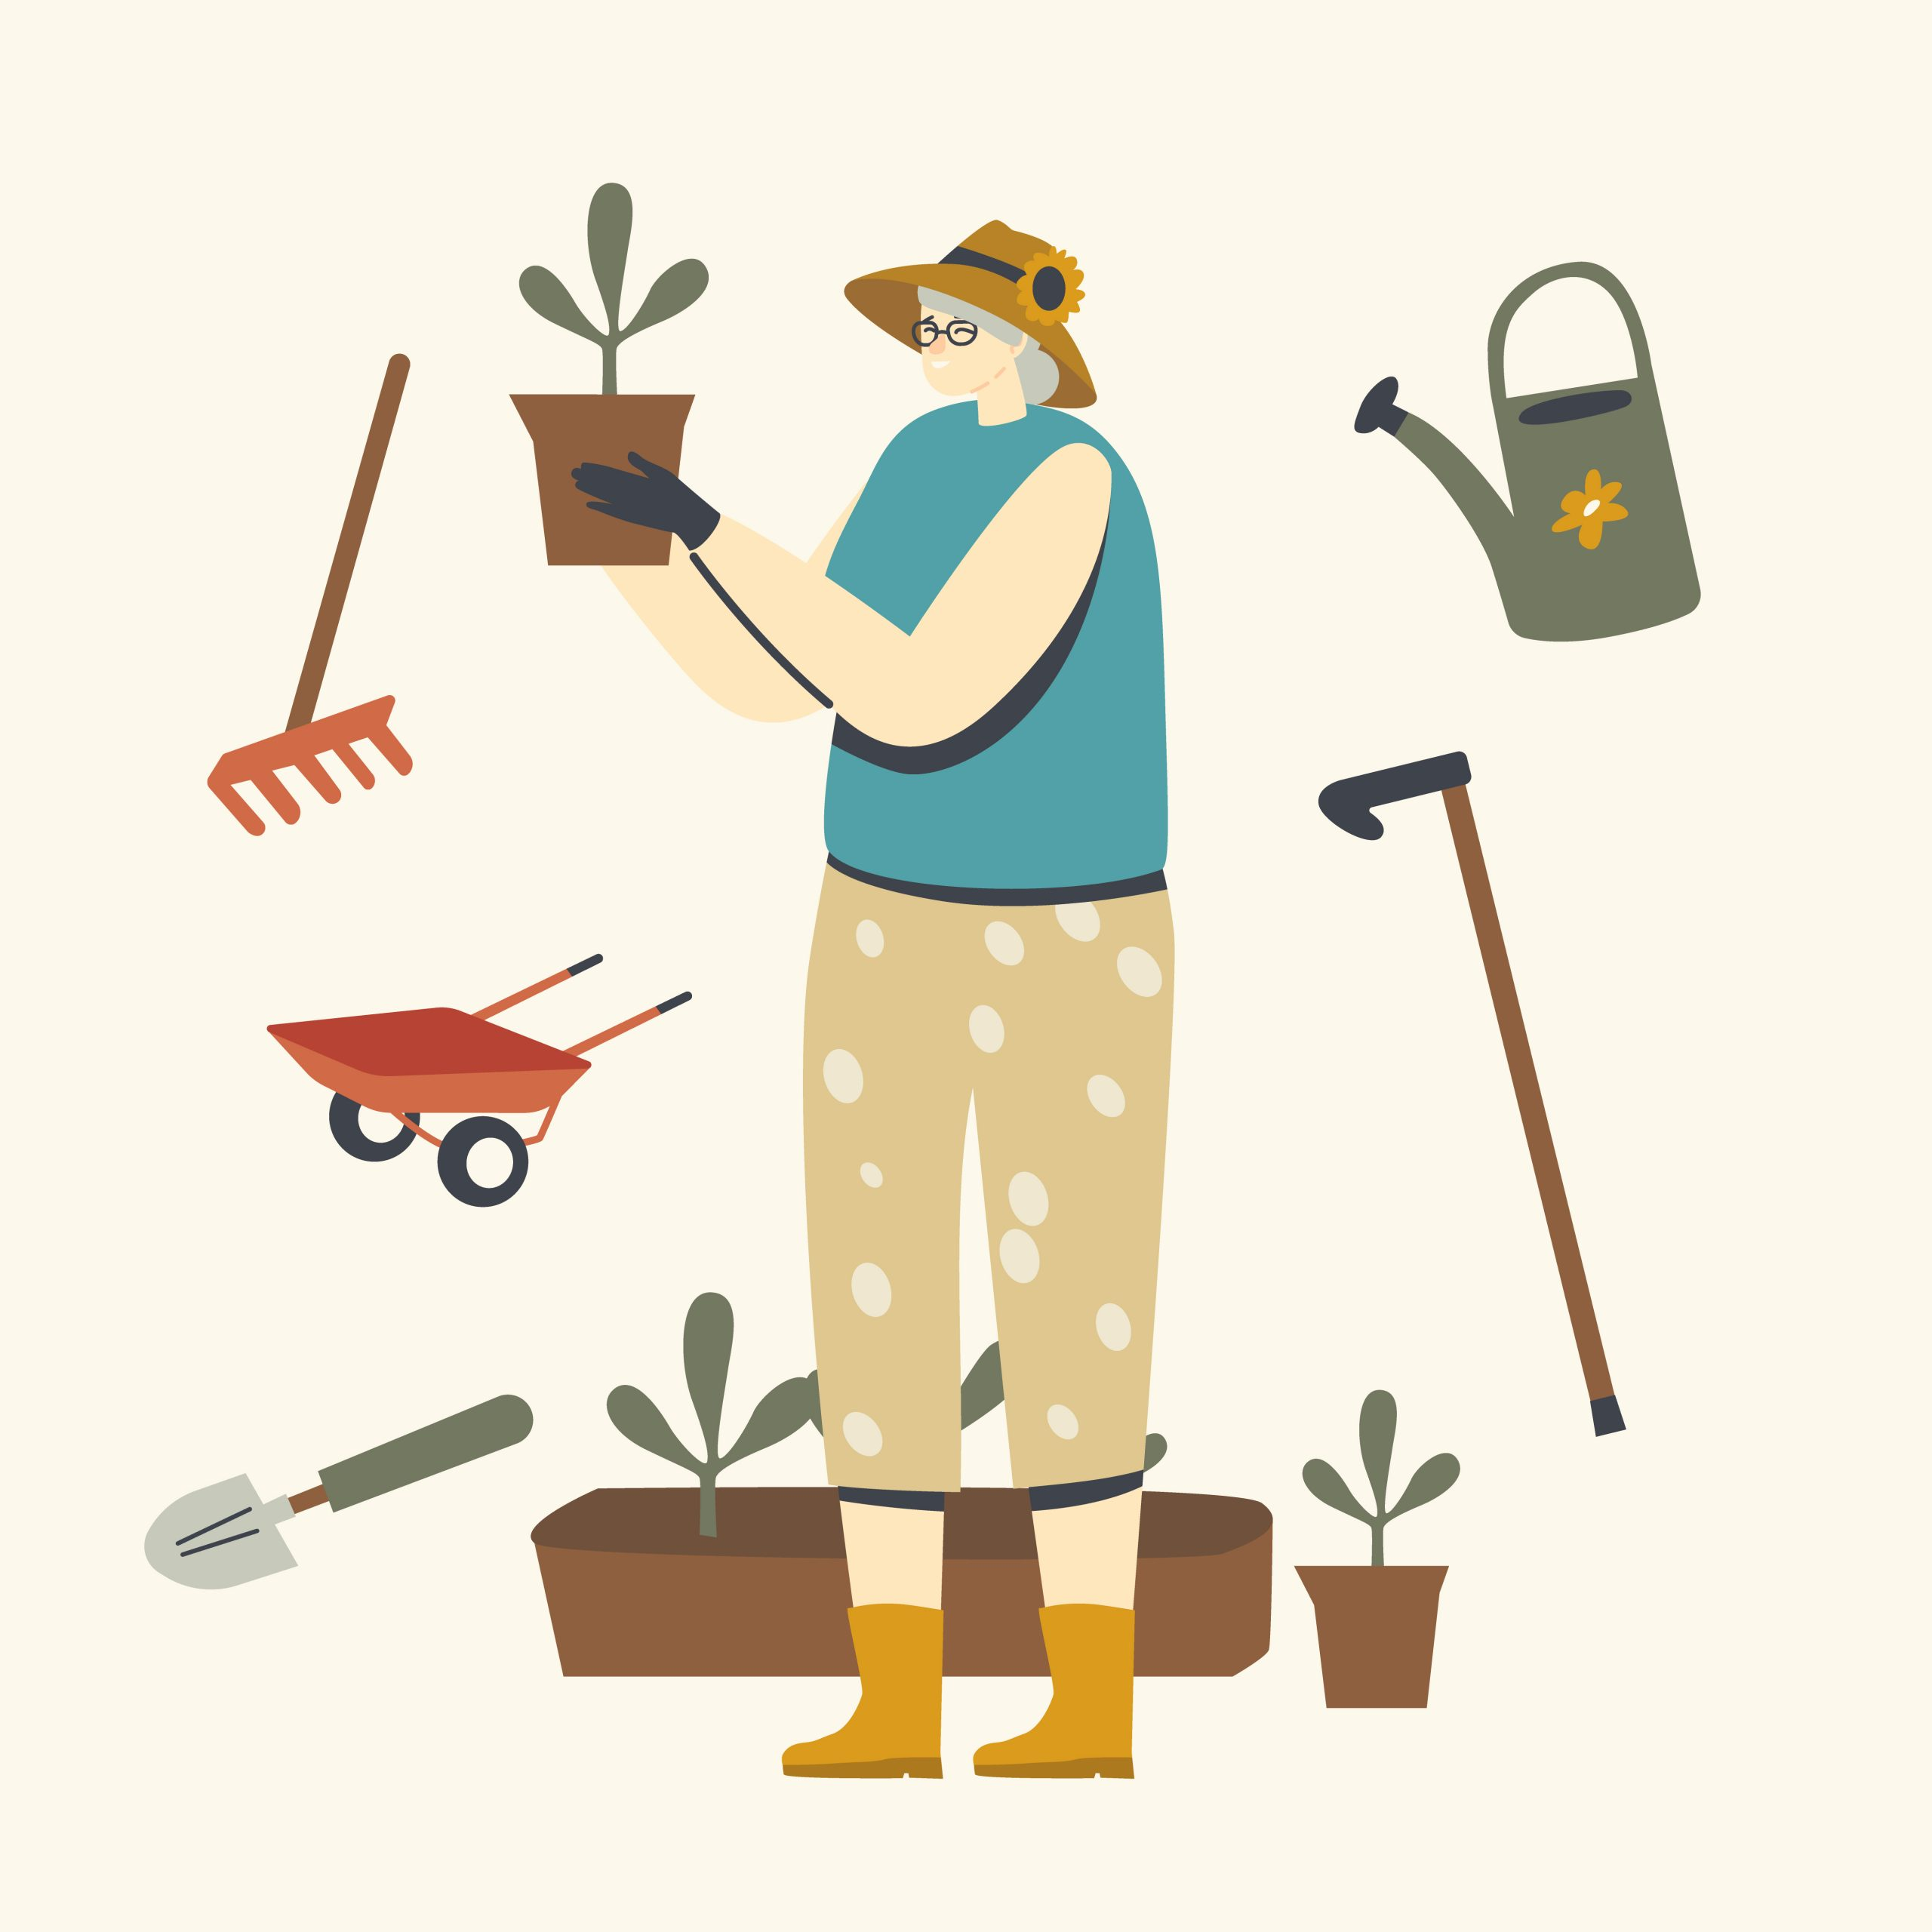 Senior Woman Gardening or Farming Hobby. Aged Grey Haired Female Character in Gloves Caring of Home Plants in Pots